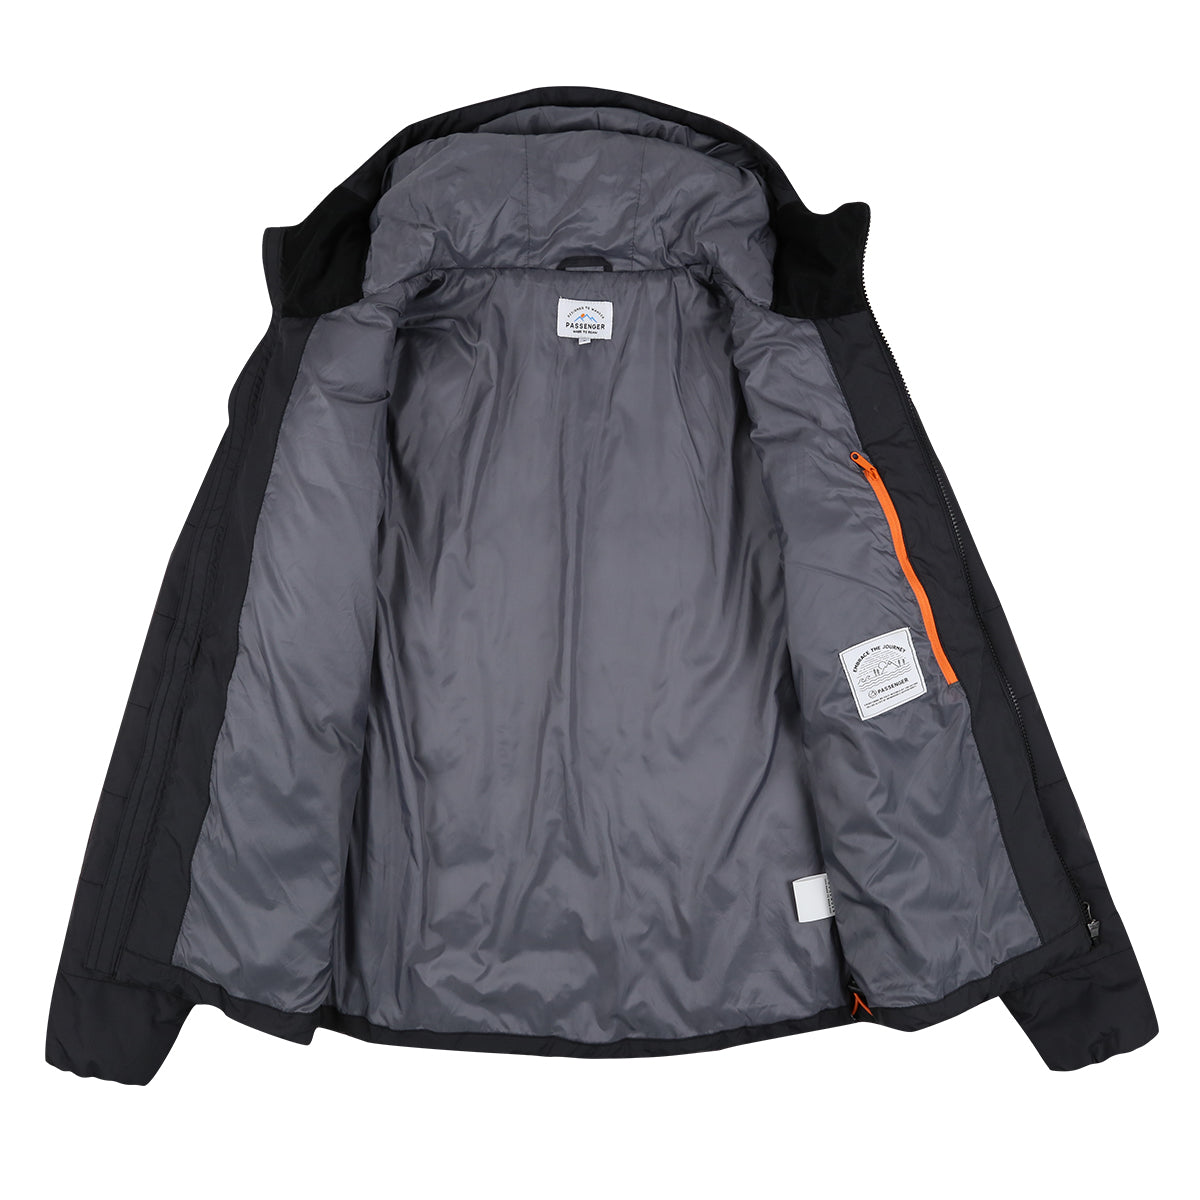 Jackpine Insulated Jacket - Black image 8